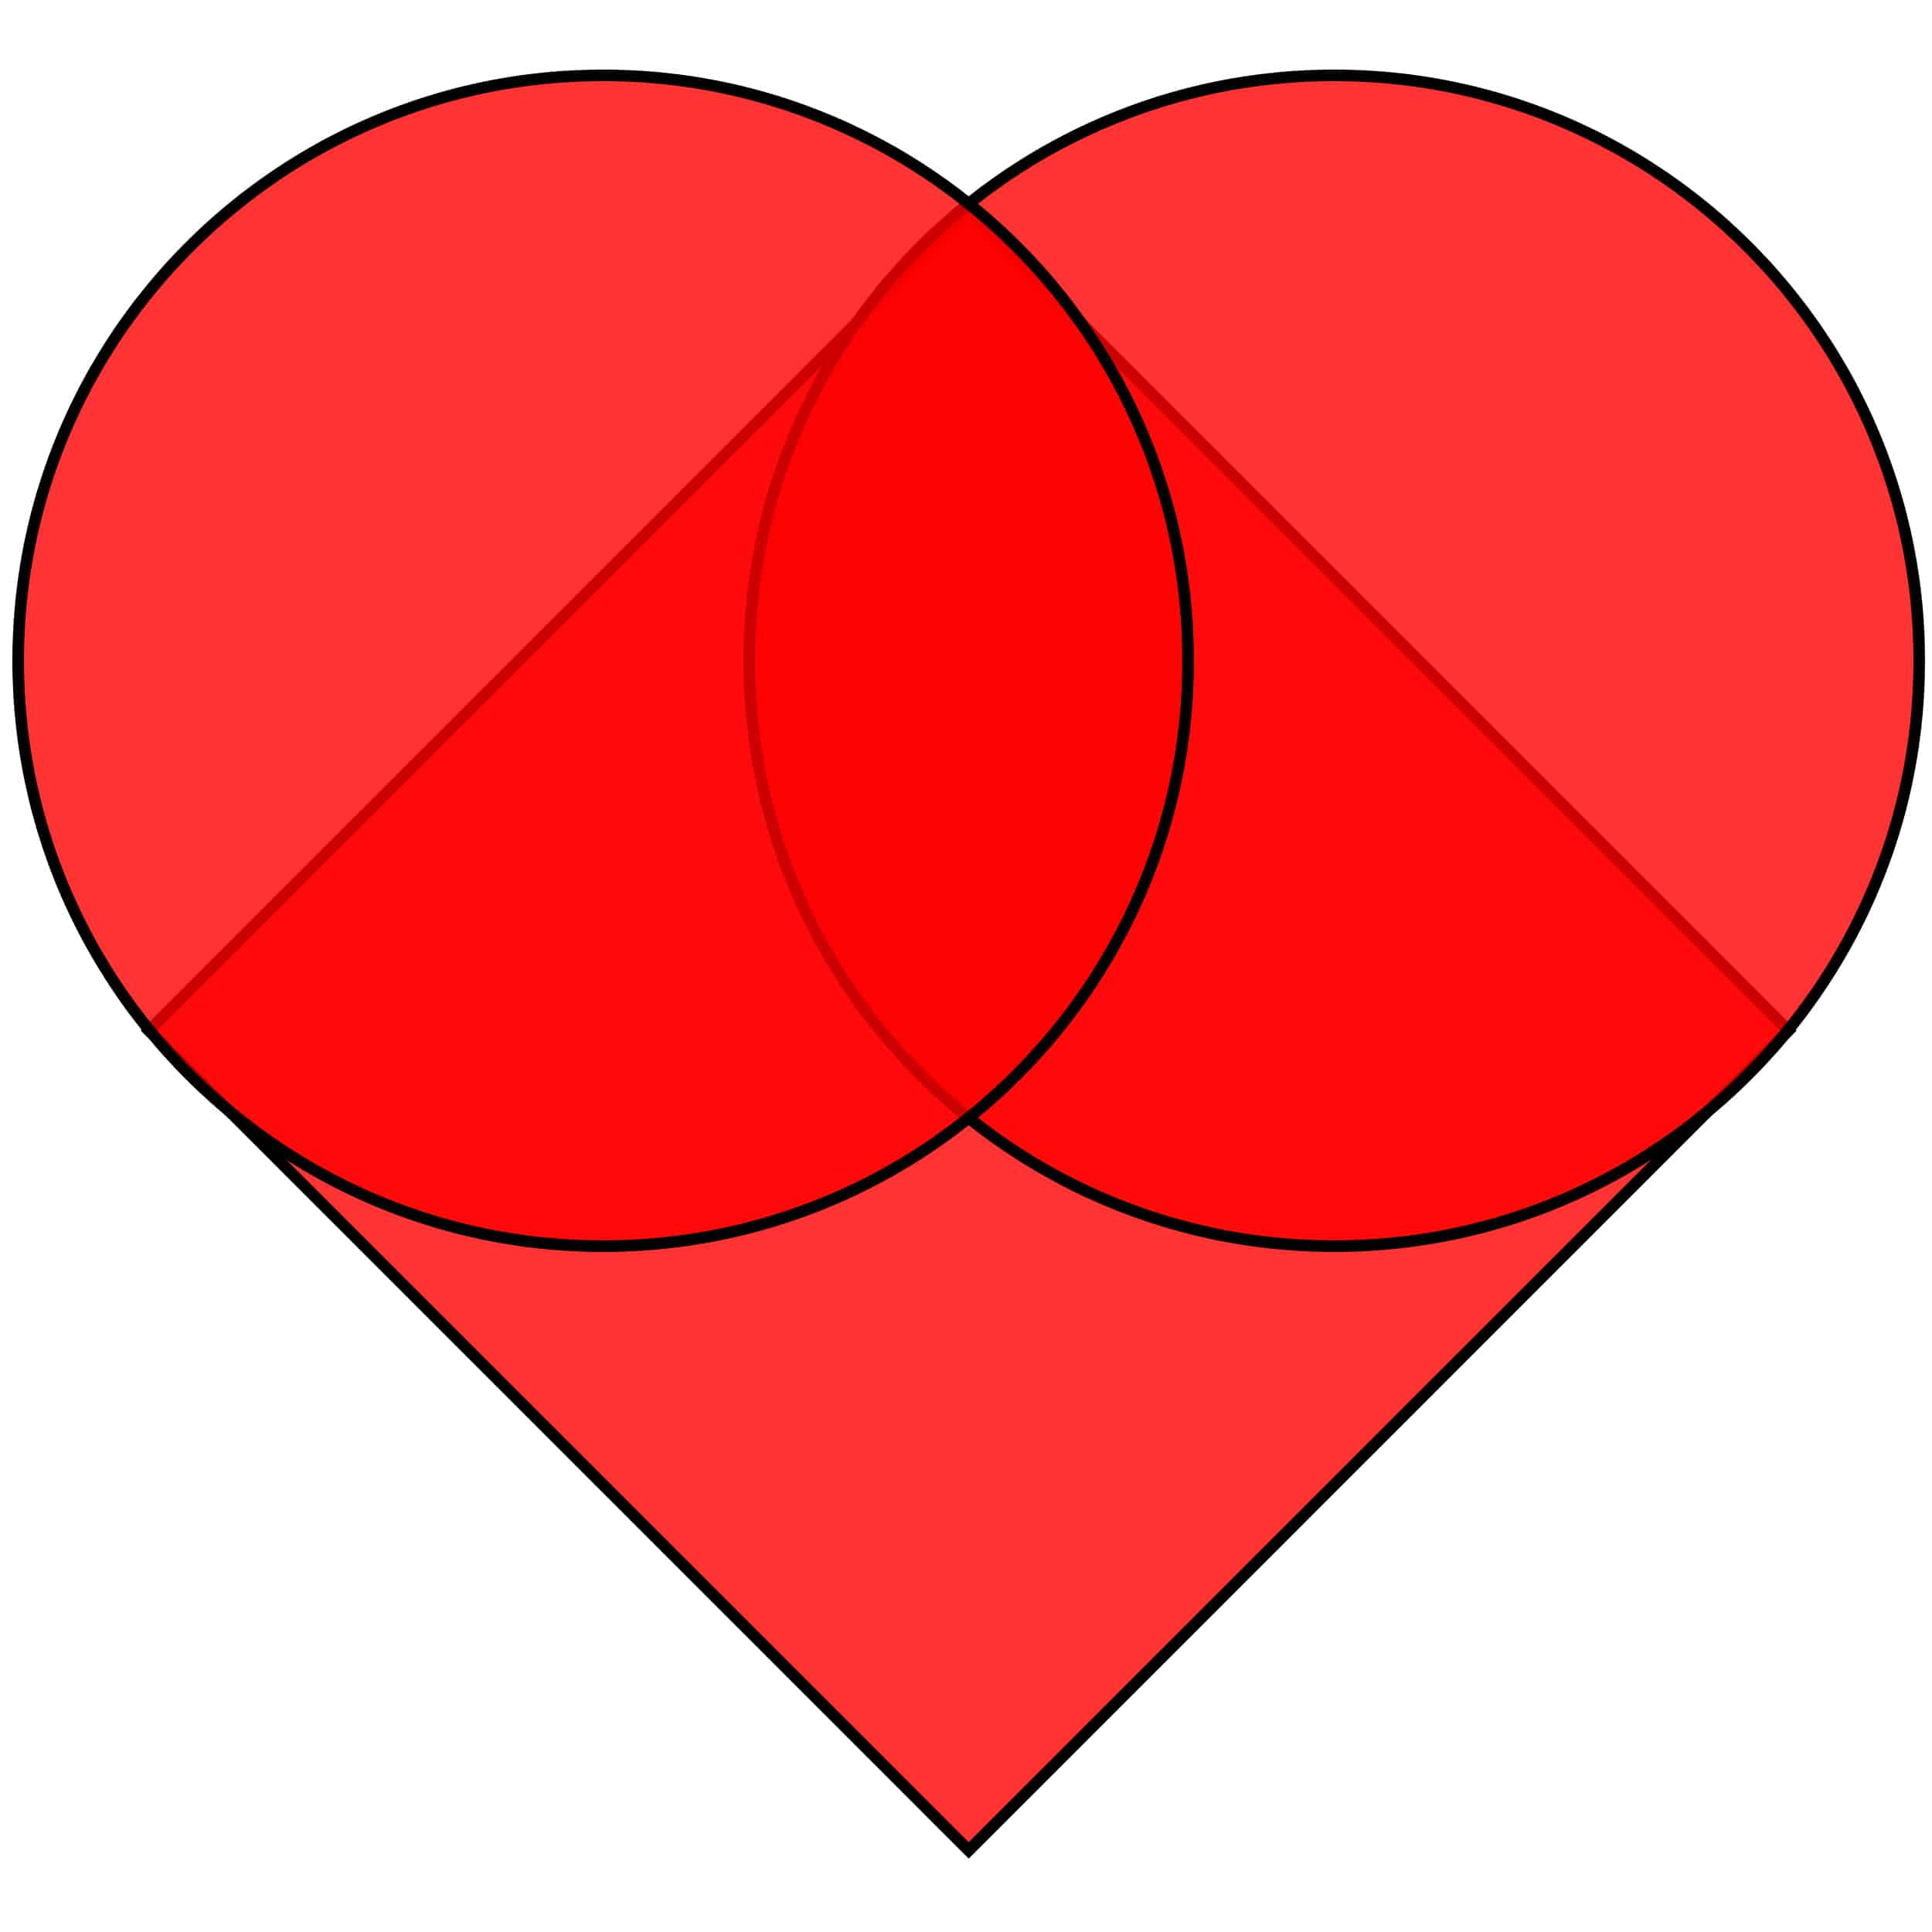 How To Make A Heart Shape Css Tricks